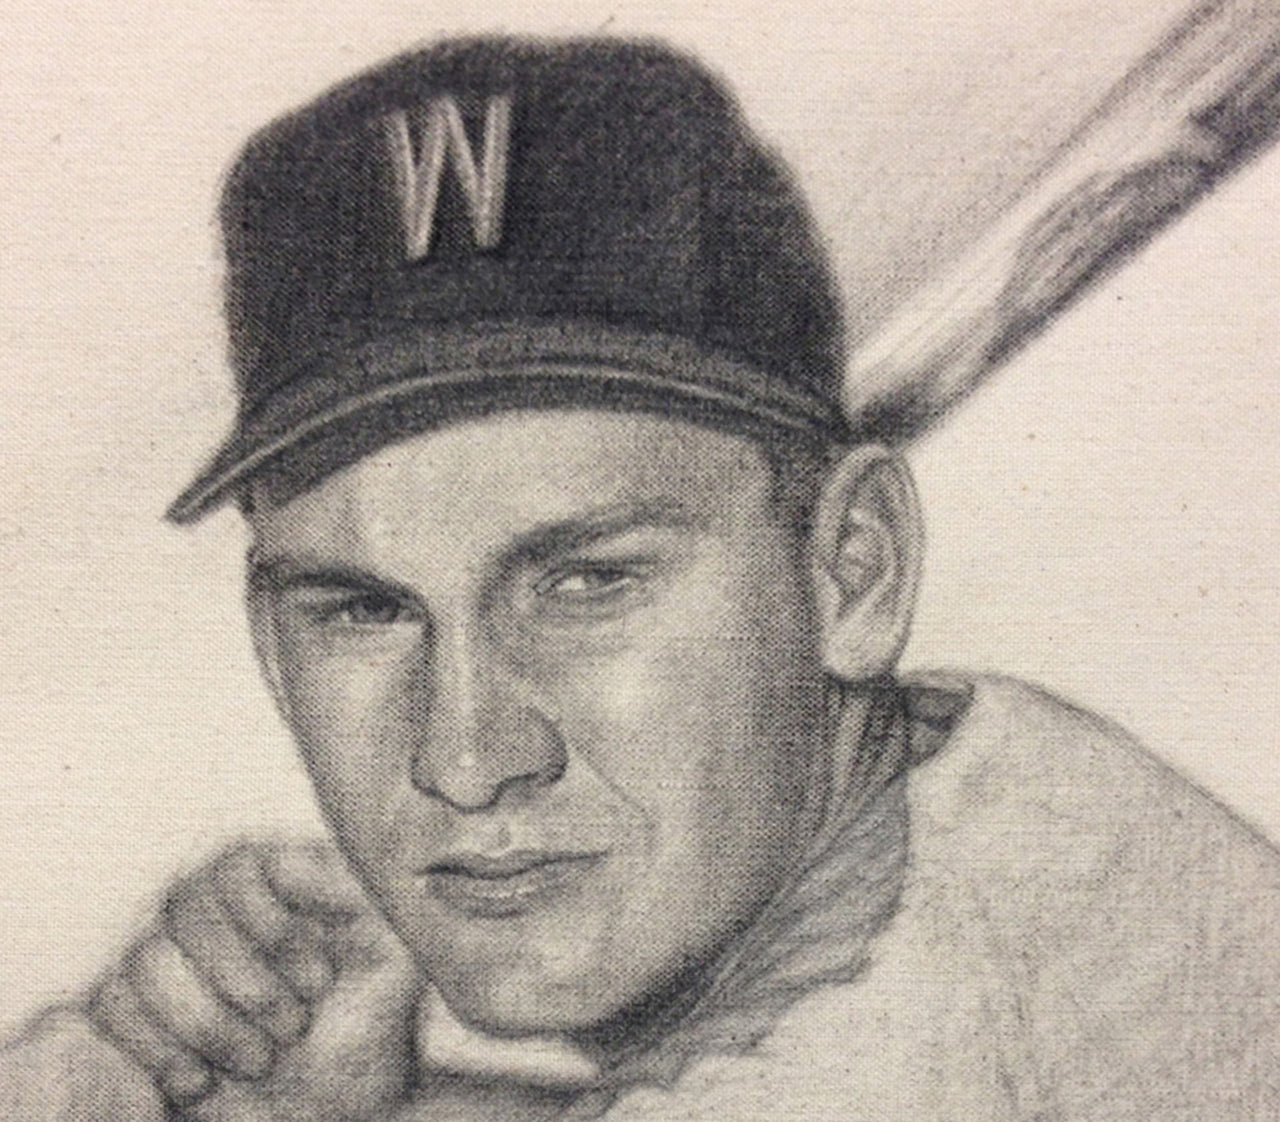 Harmon Killebrew - Graphite on Raw Canvas 11x14